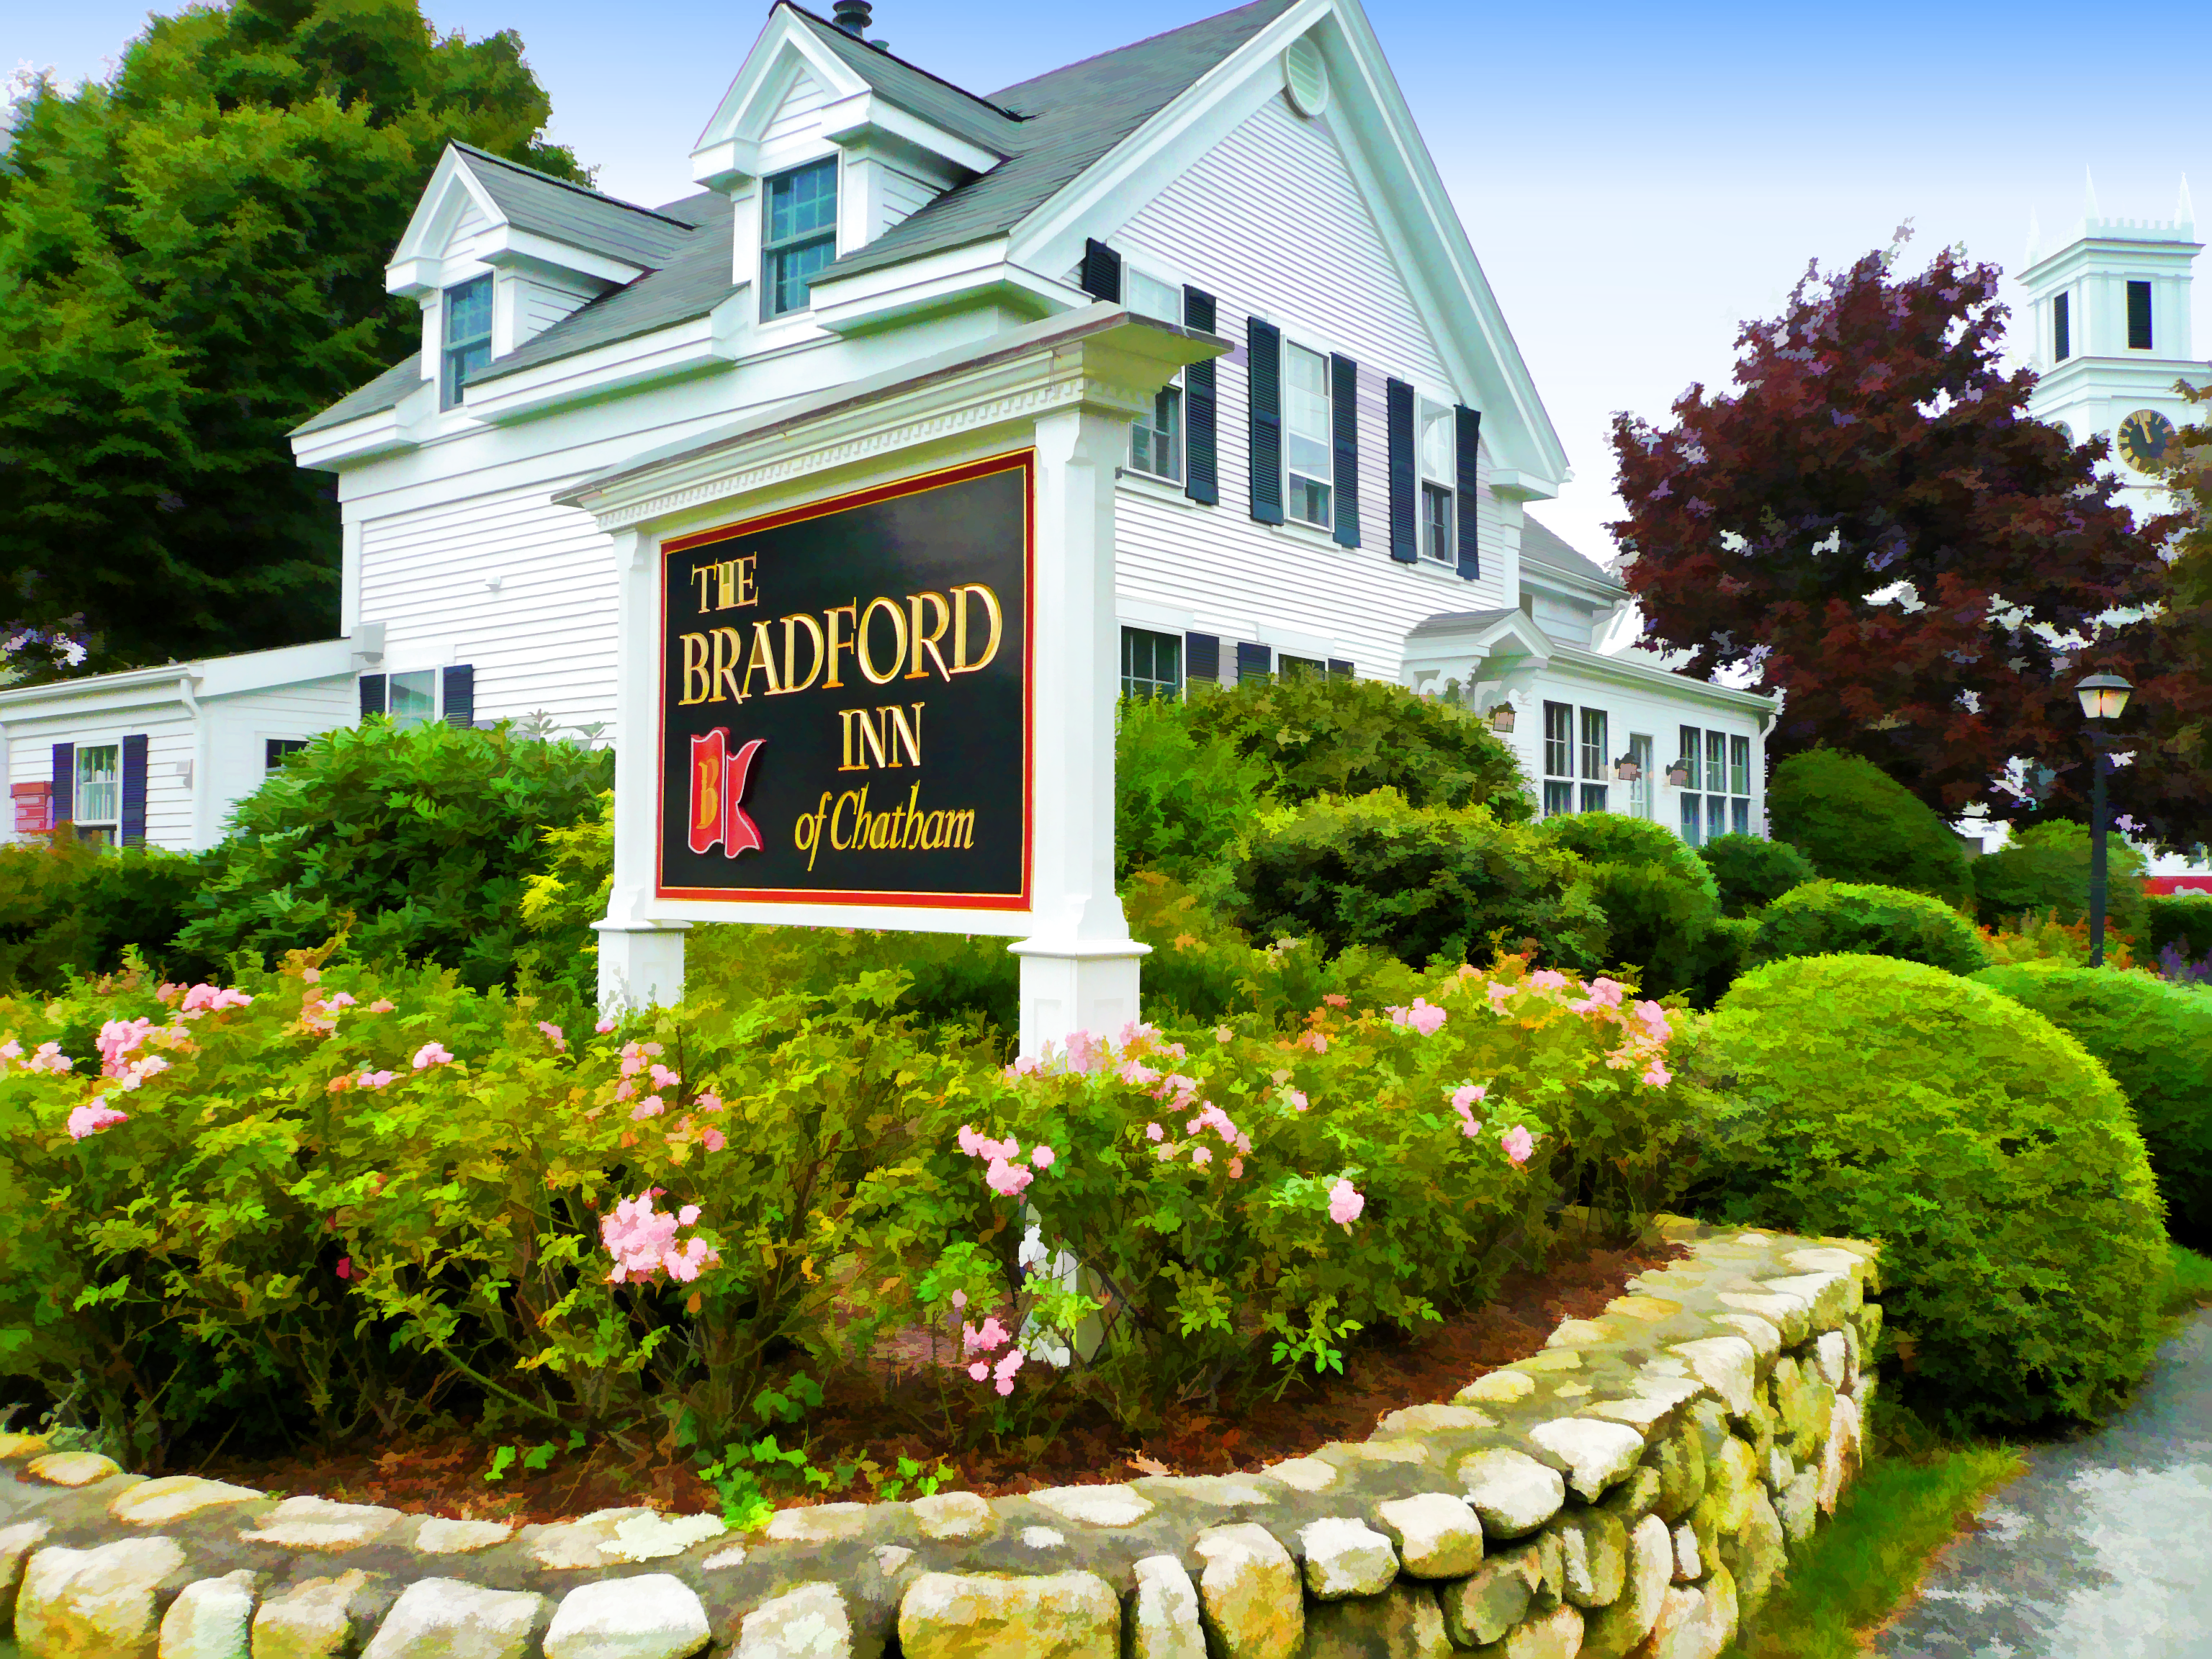 The Bradford Inn - Chatham, MA. Beautiful place to stay ...